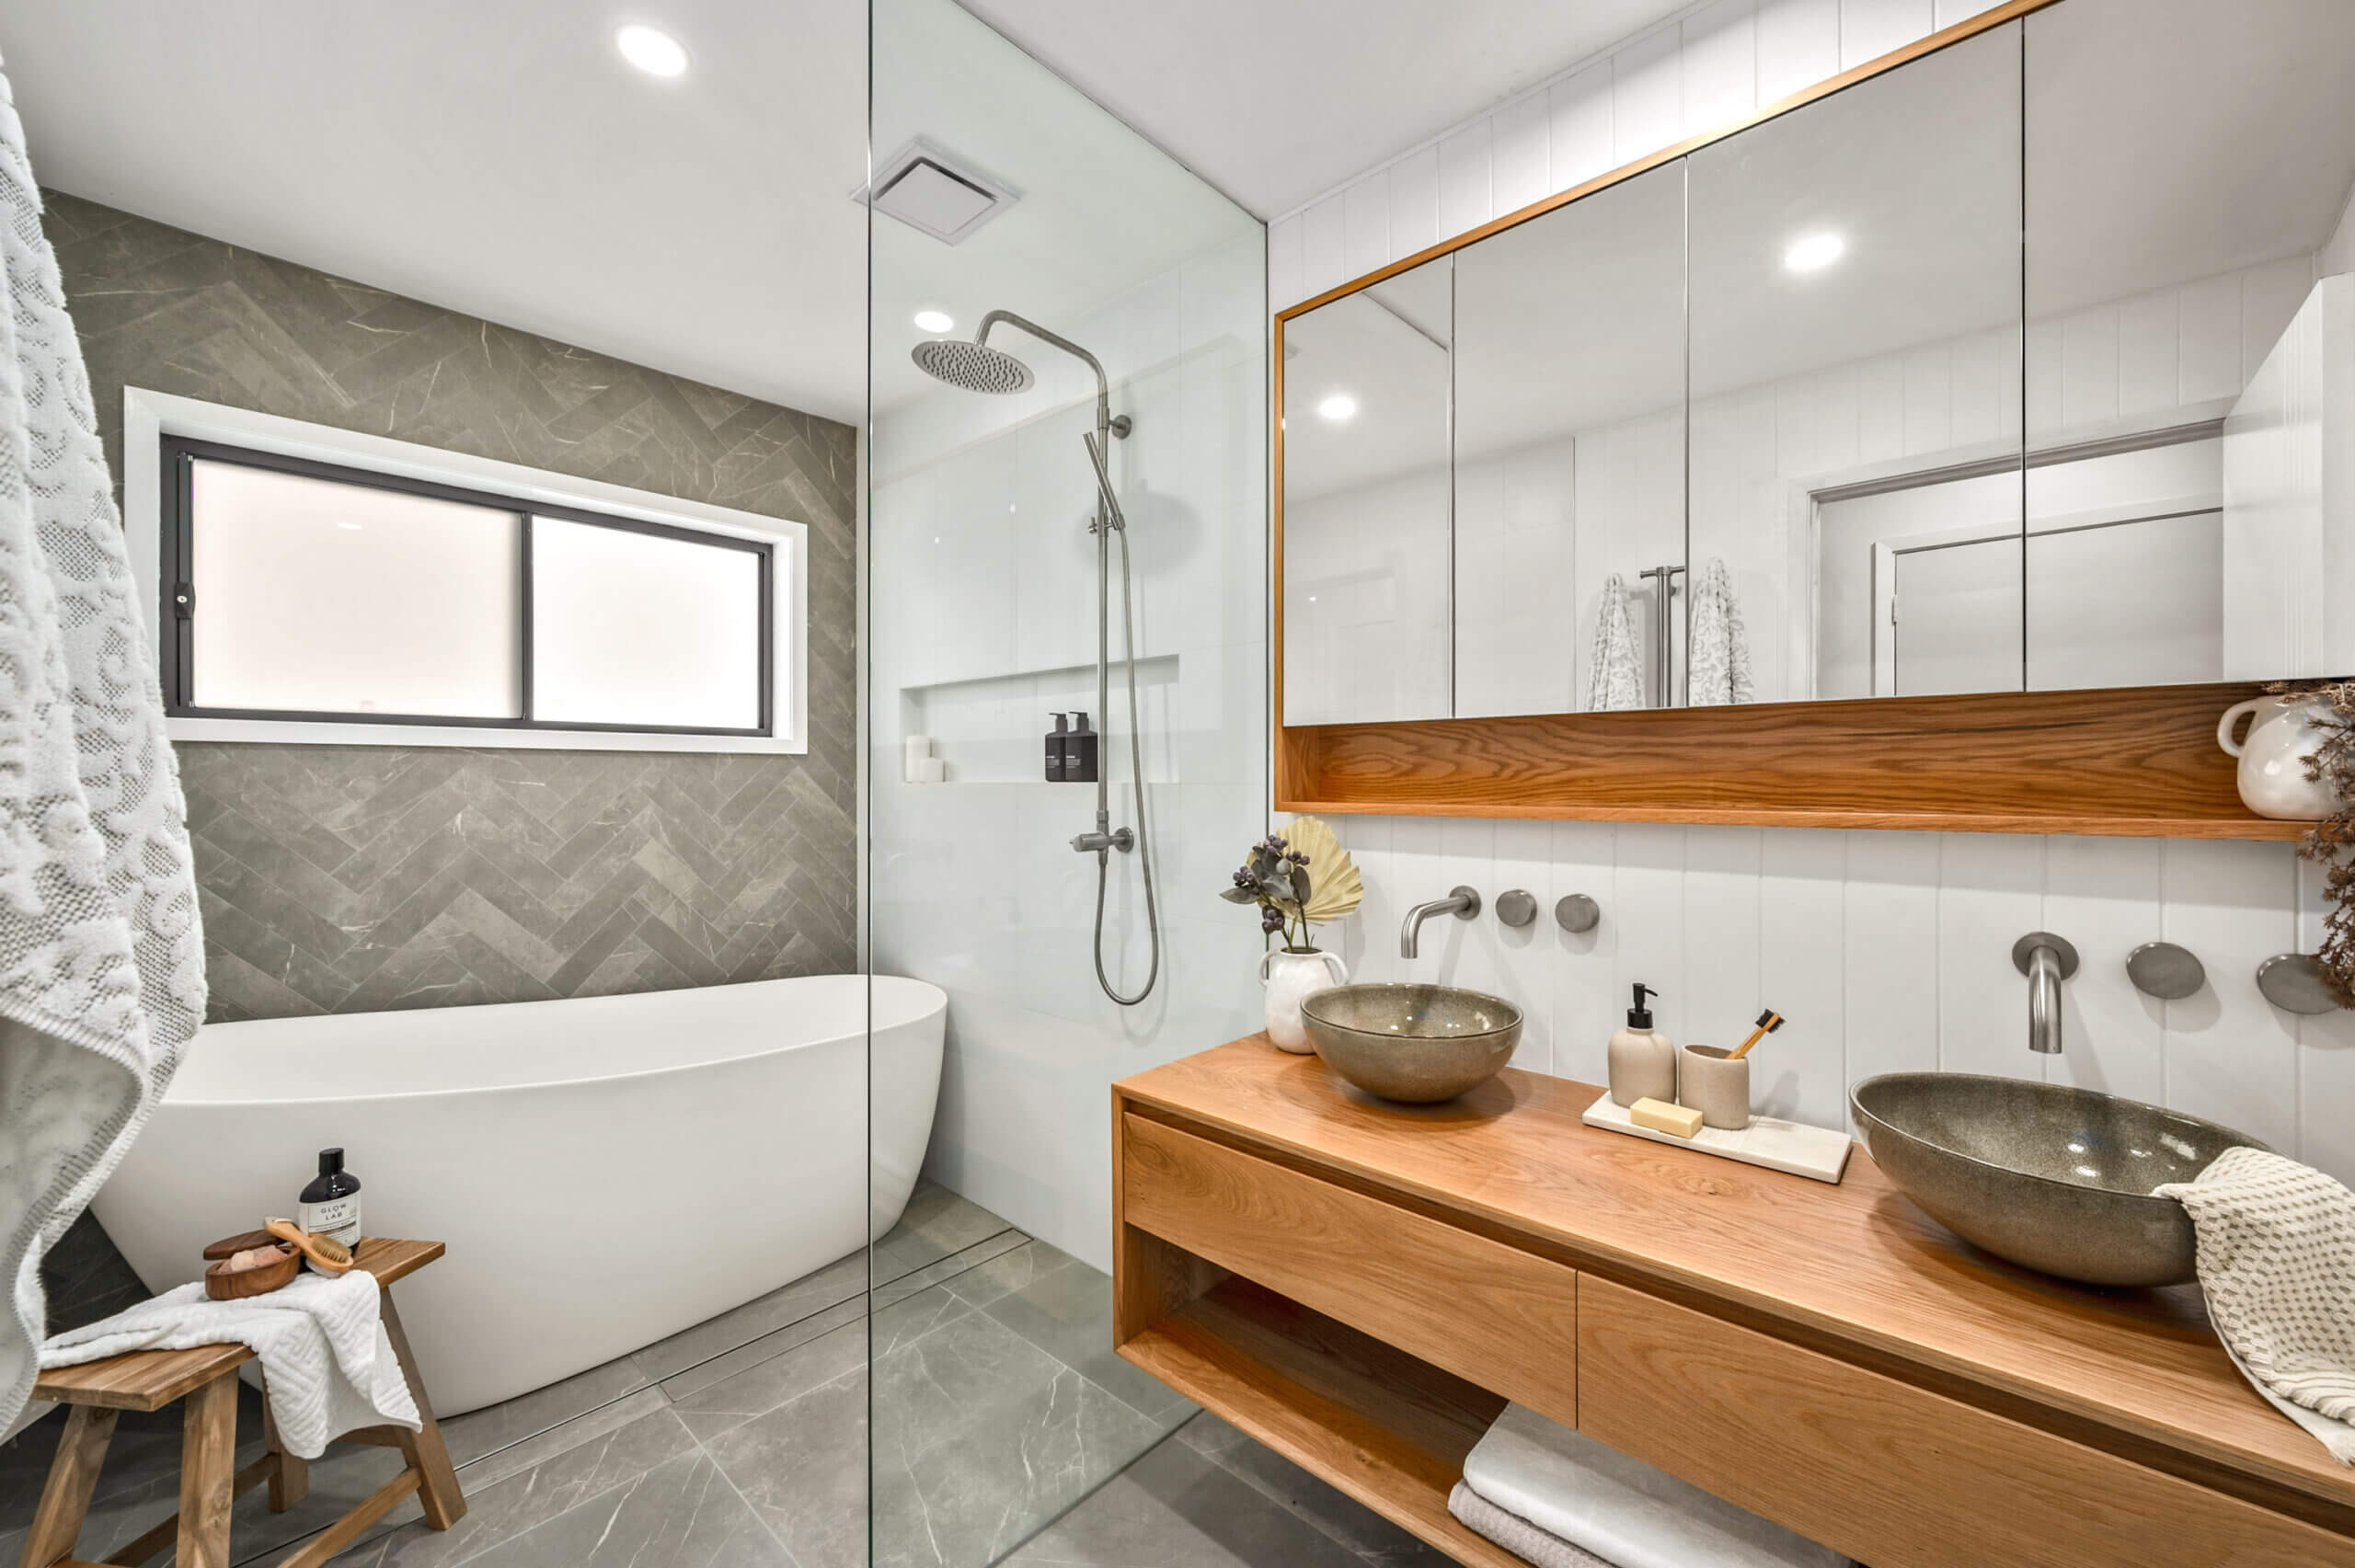 8 Important Factors to Consider for a Bathroom Installation